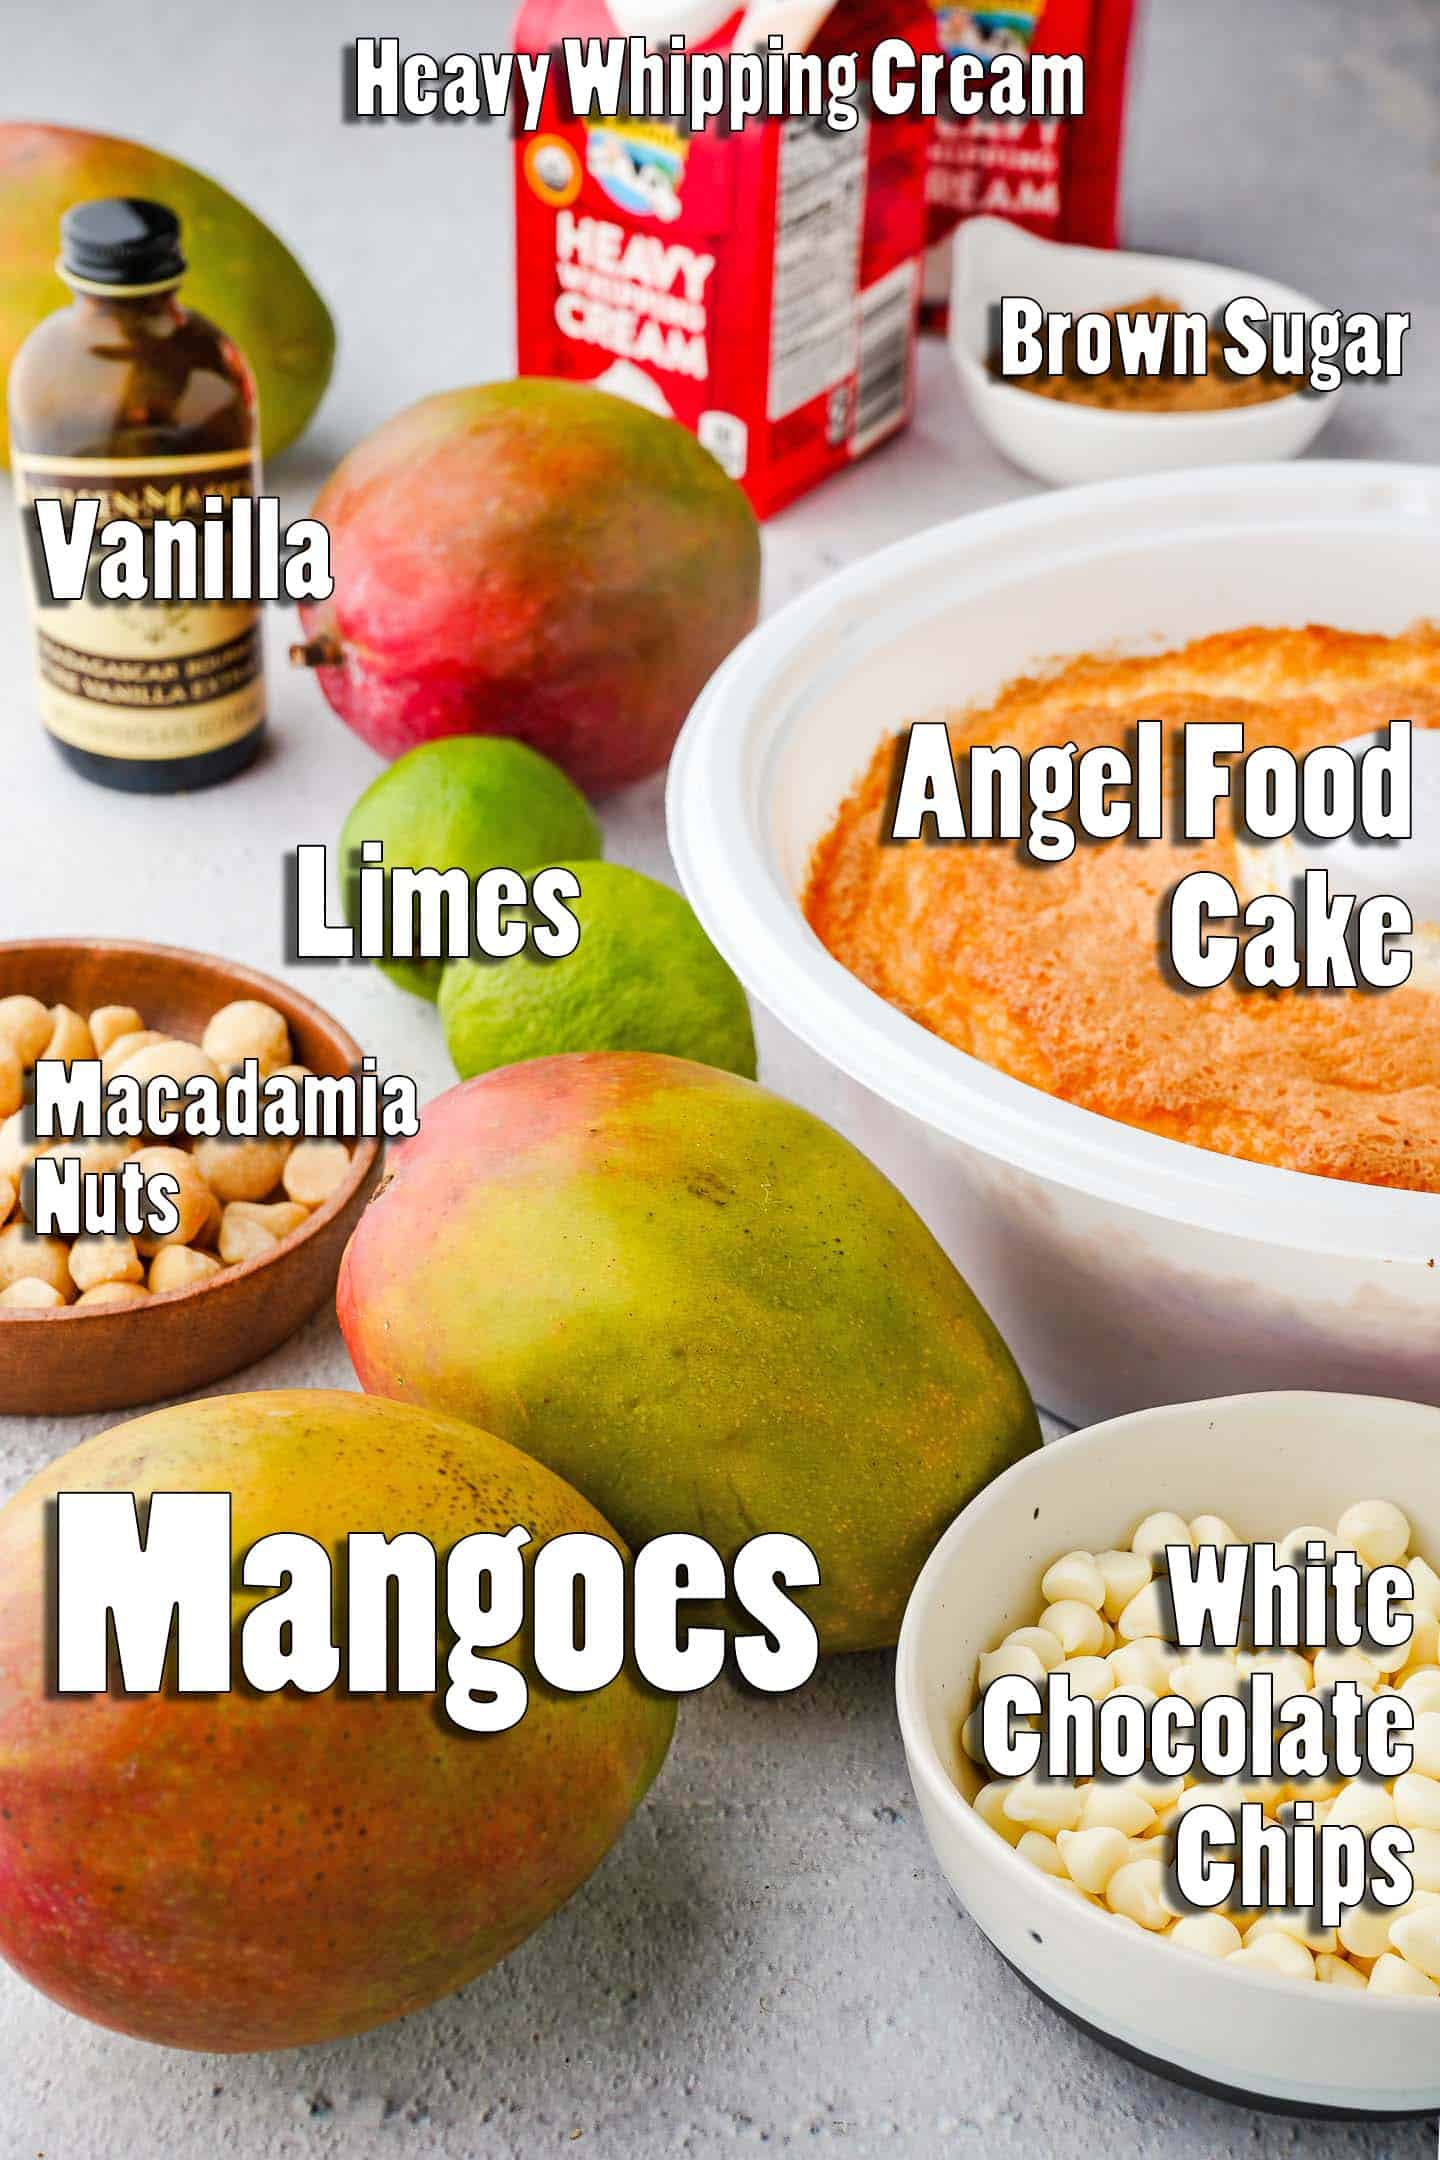 Mango Trifle Ingredients Laid out on Table